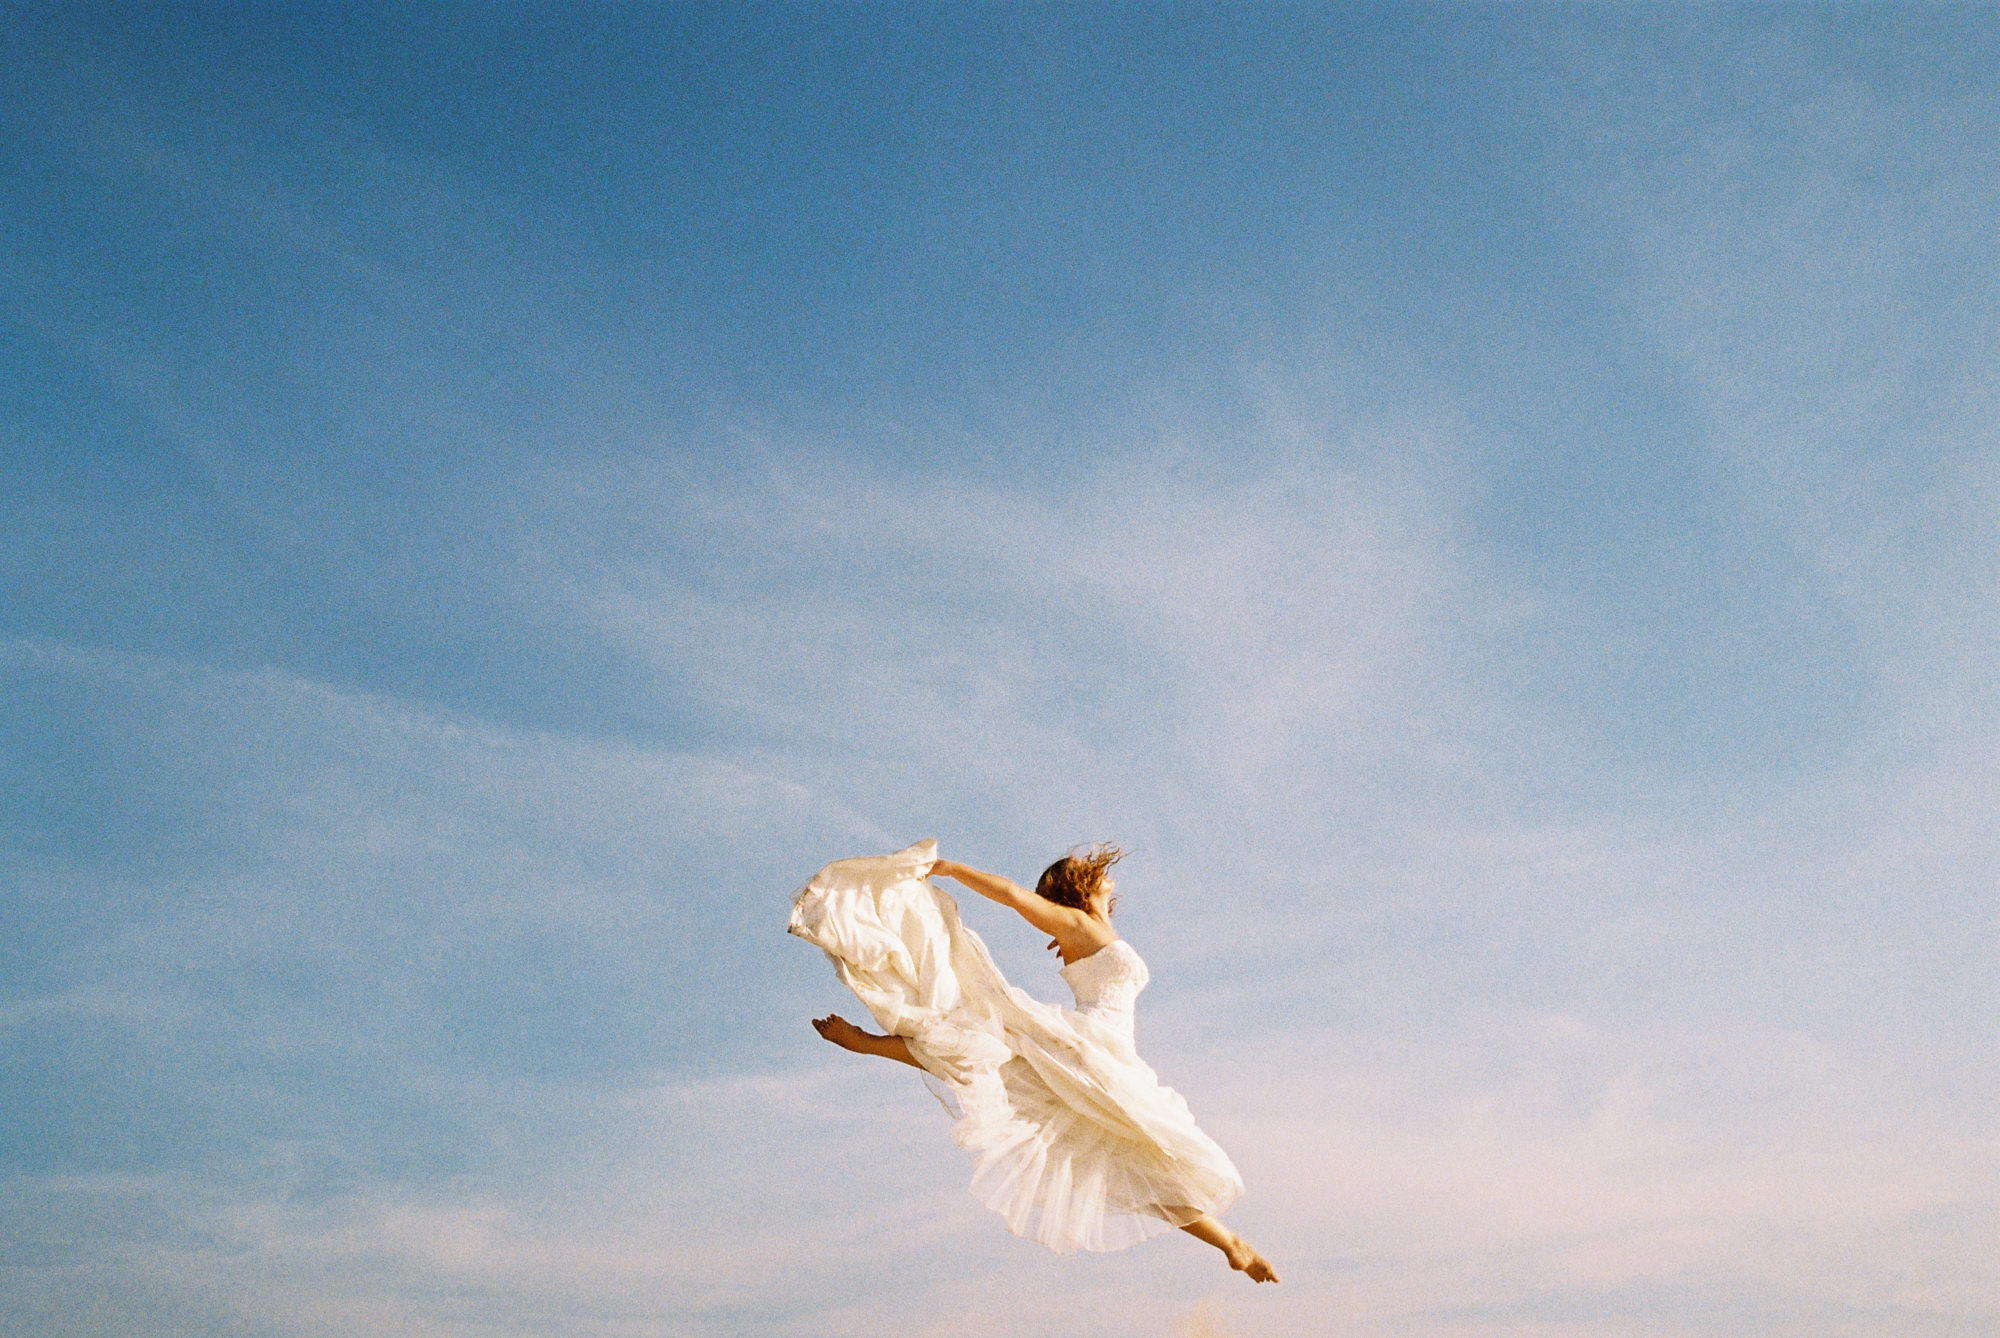 bride-in-gown-ballet-graceful-leap-in-air-against-blue-sky-worlds-best-wedding-photos-fer-juaristi-mexico-wedding-photographers